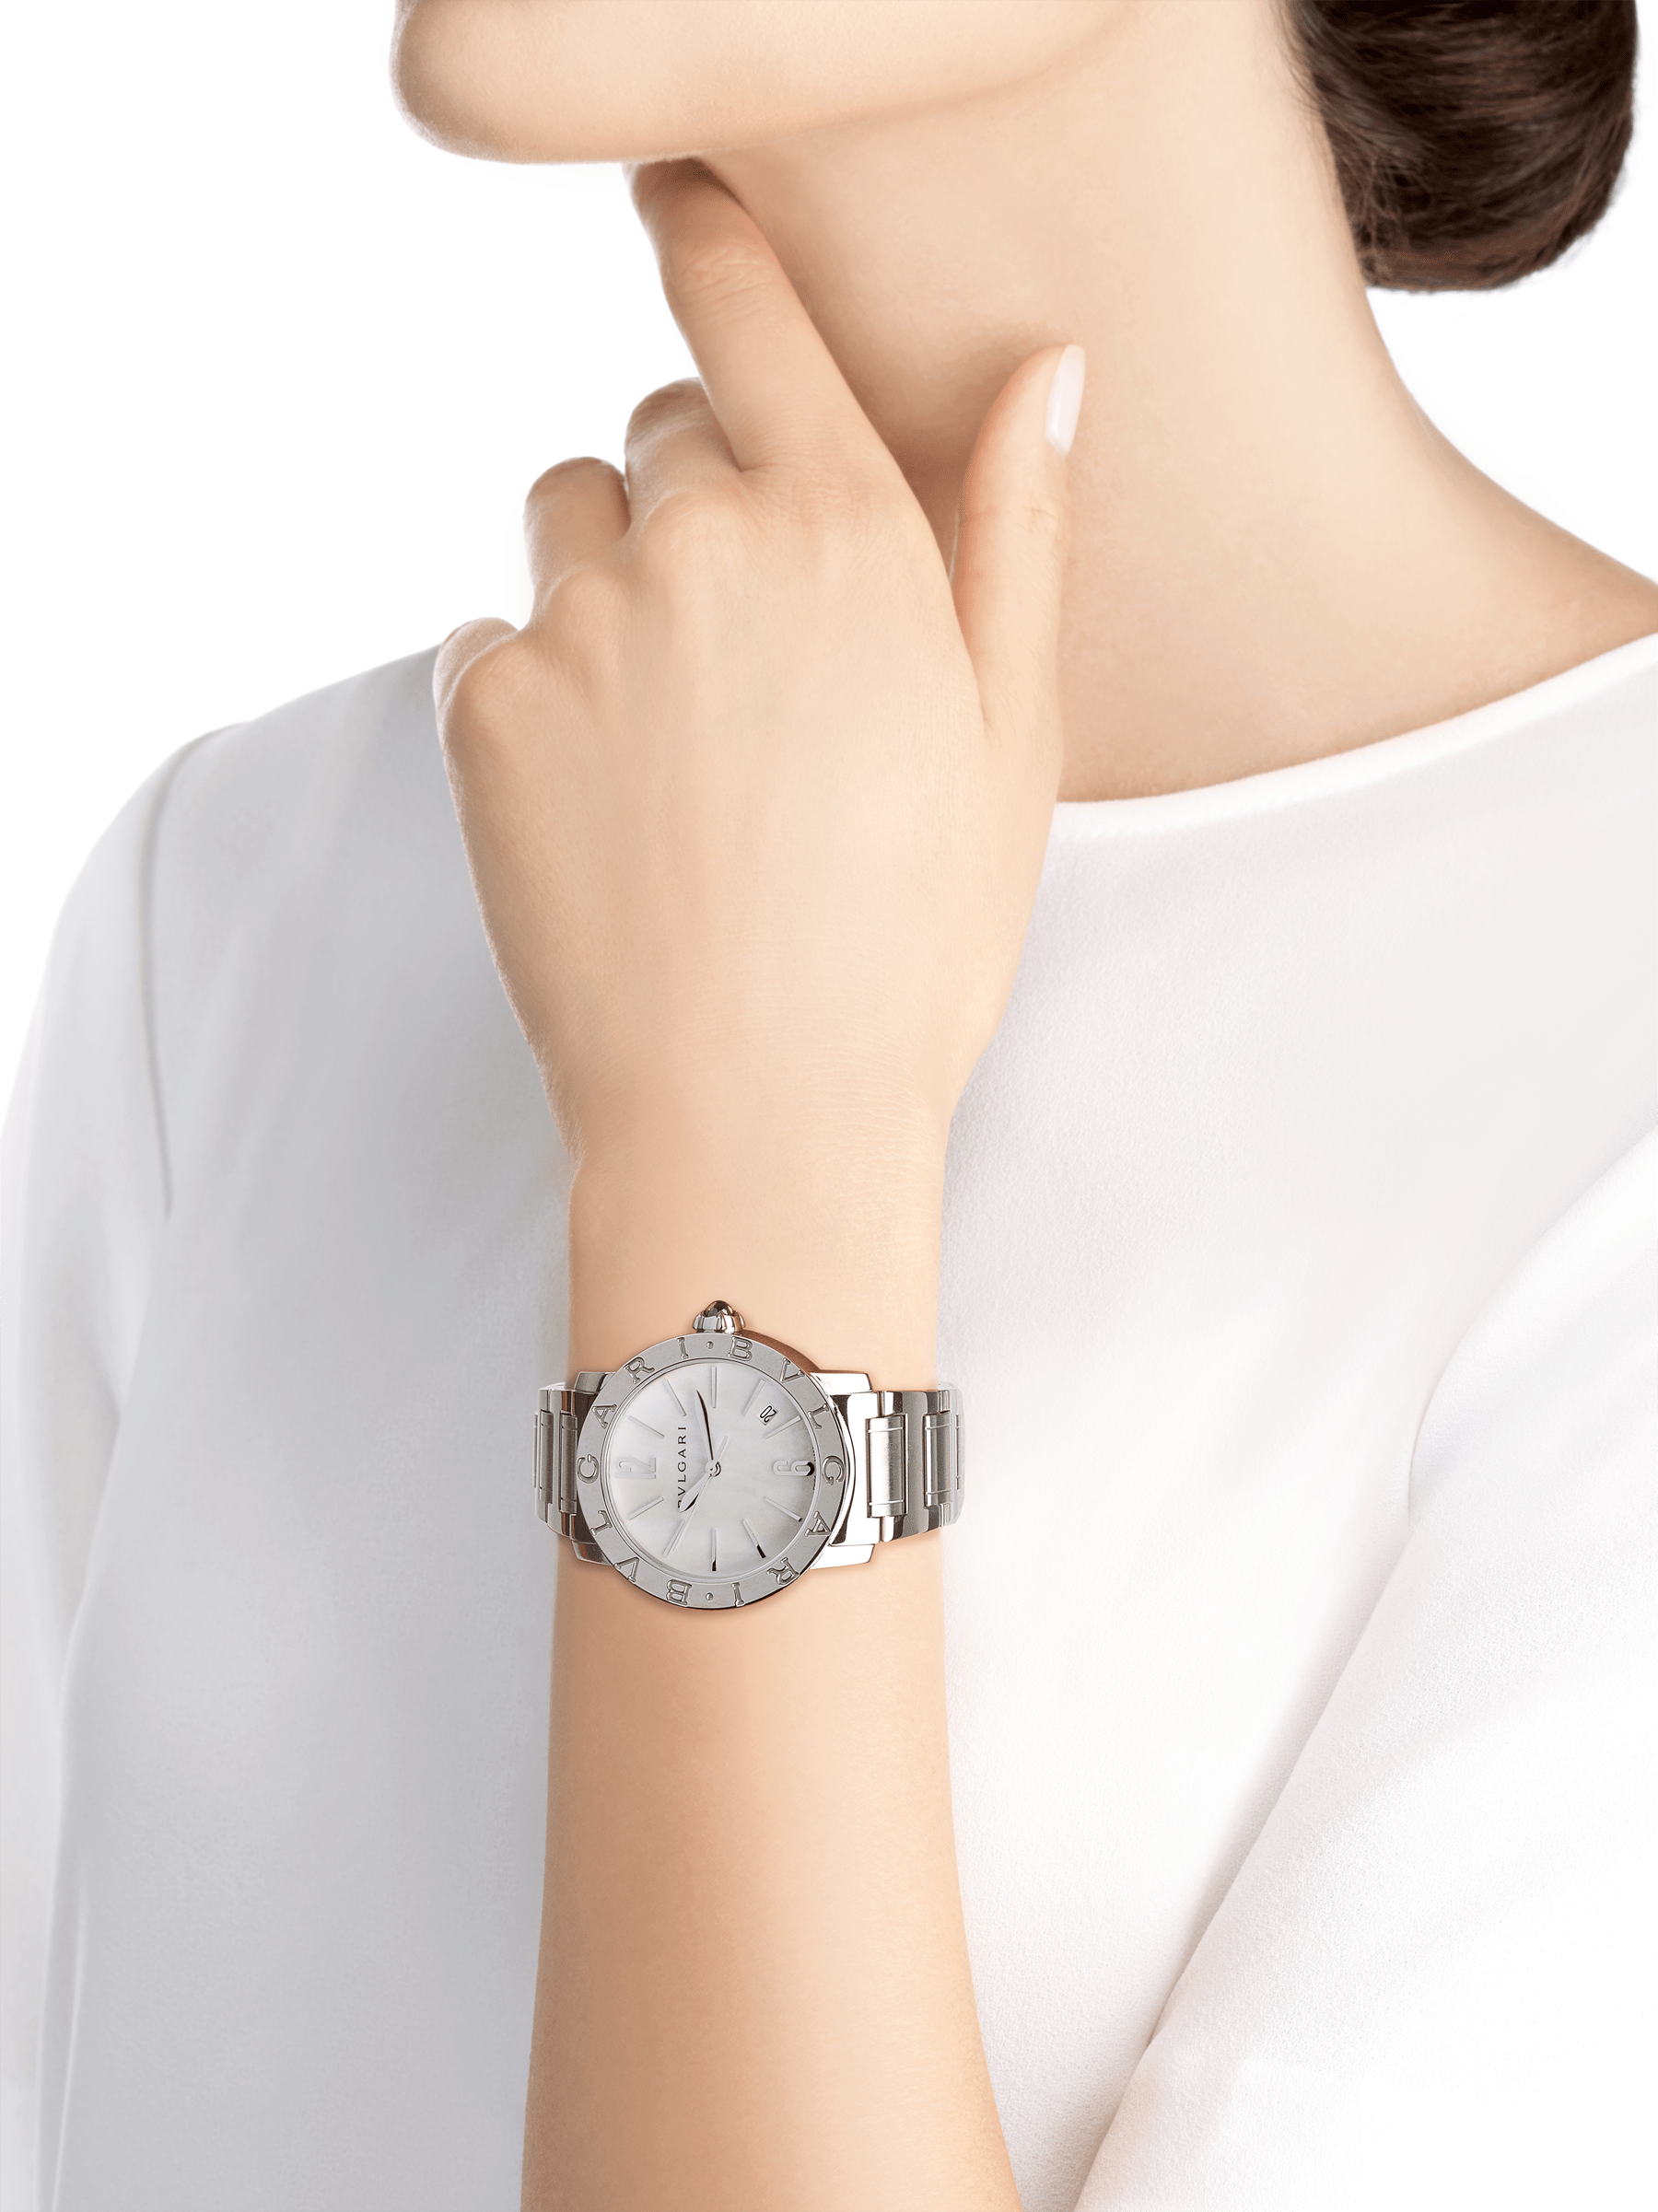 BVLGARI BVLGARI watch in stainless steel case and bracelet with white mother-of-pearl dial and date indication. Large model 101976 image 2